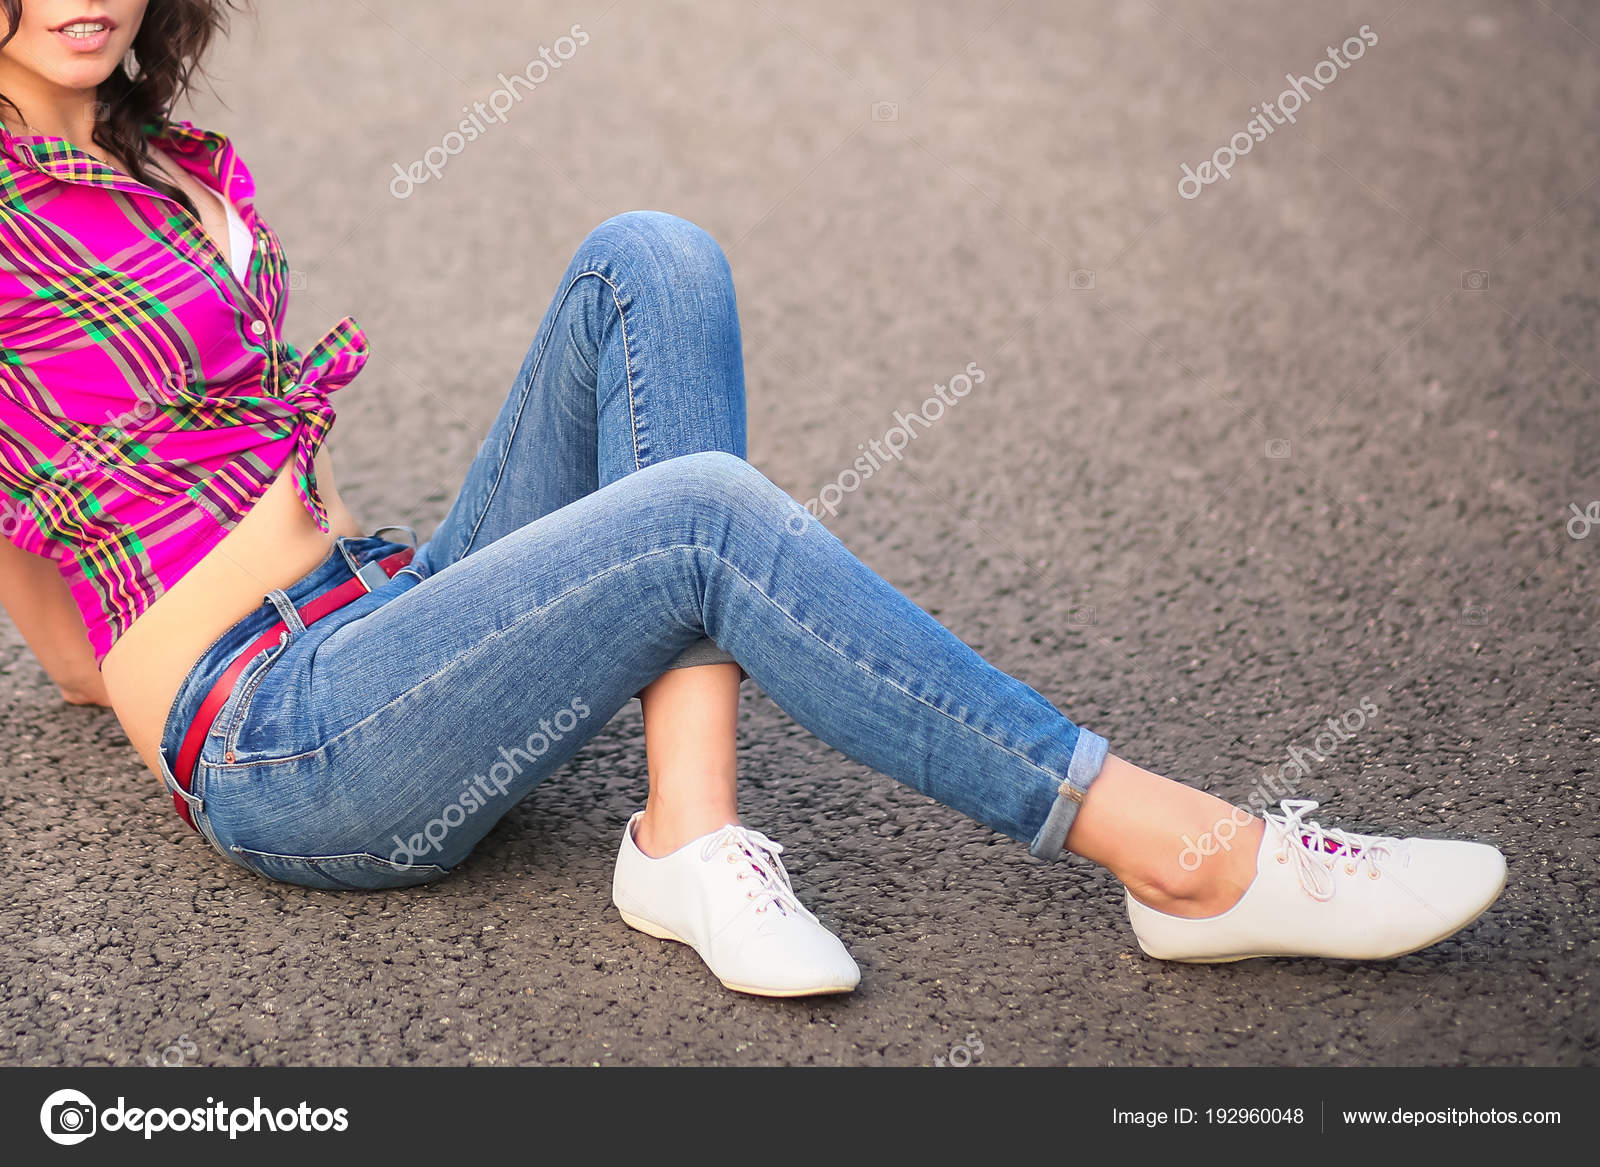 Sexy smiling girl in jeans and shoes